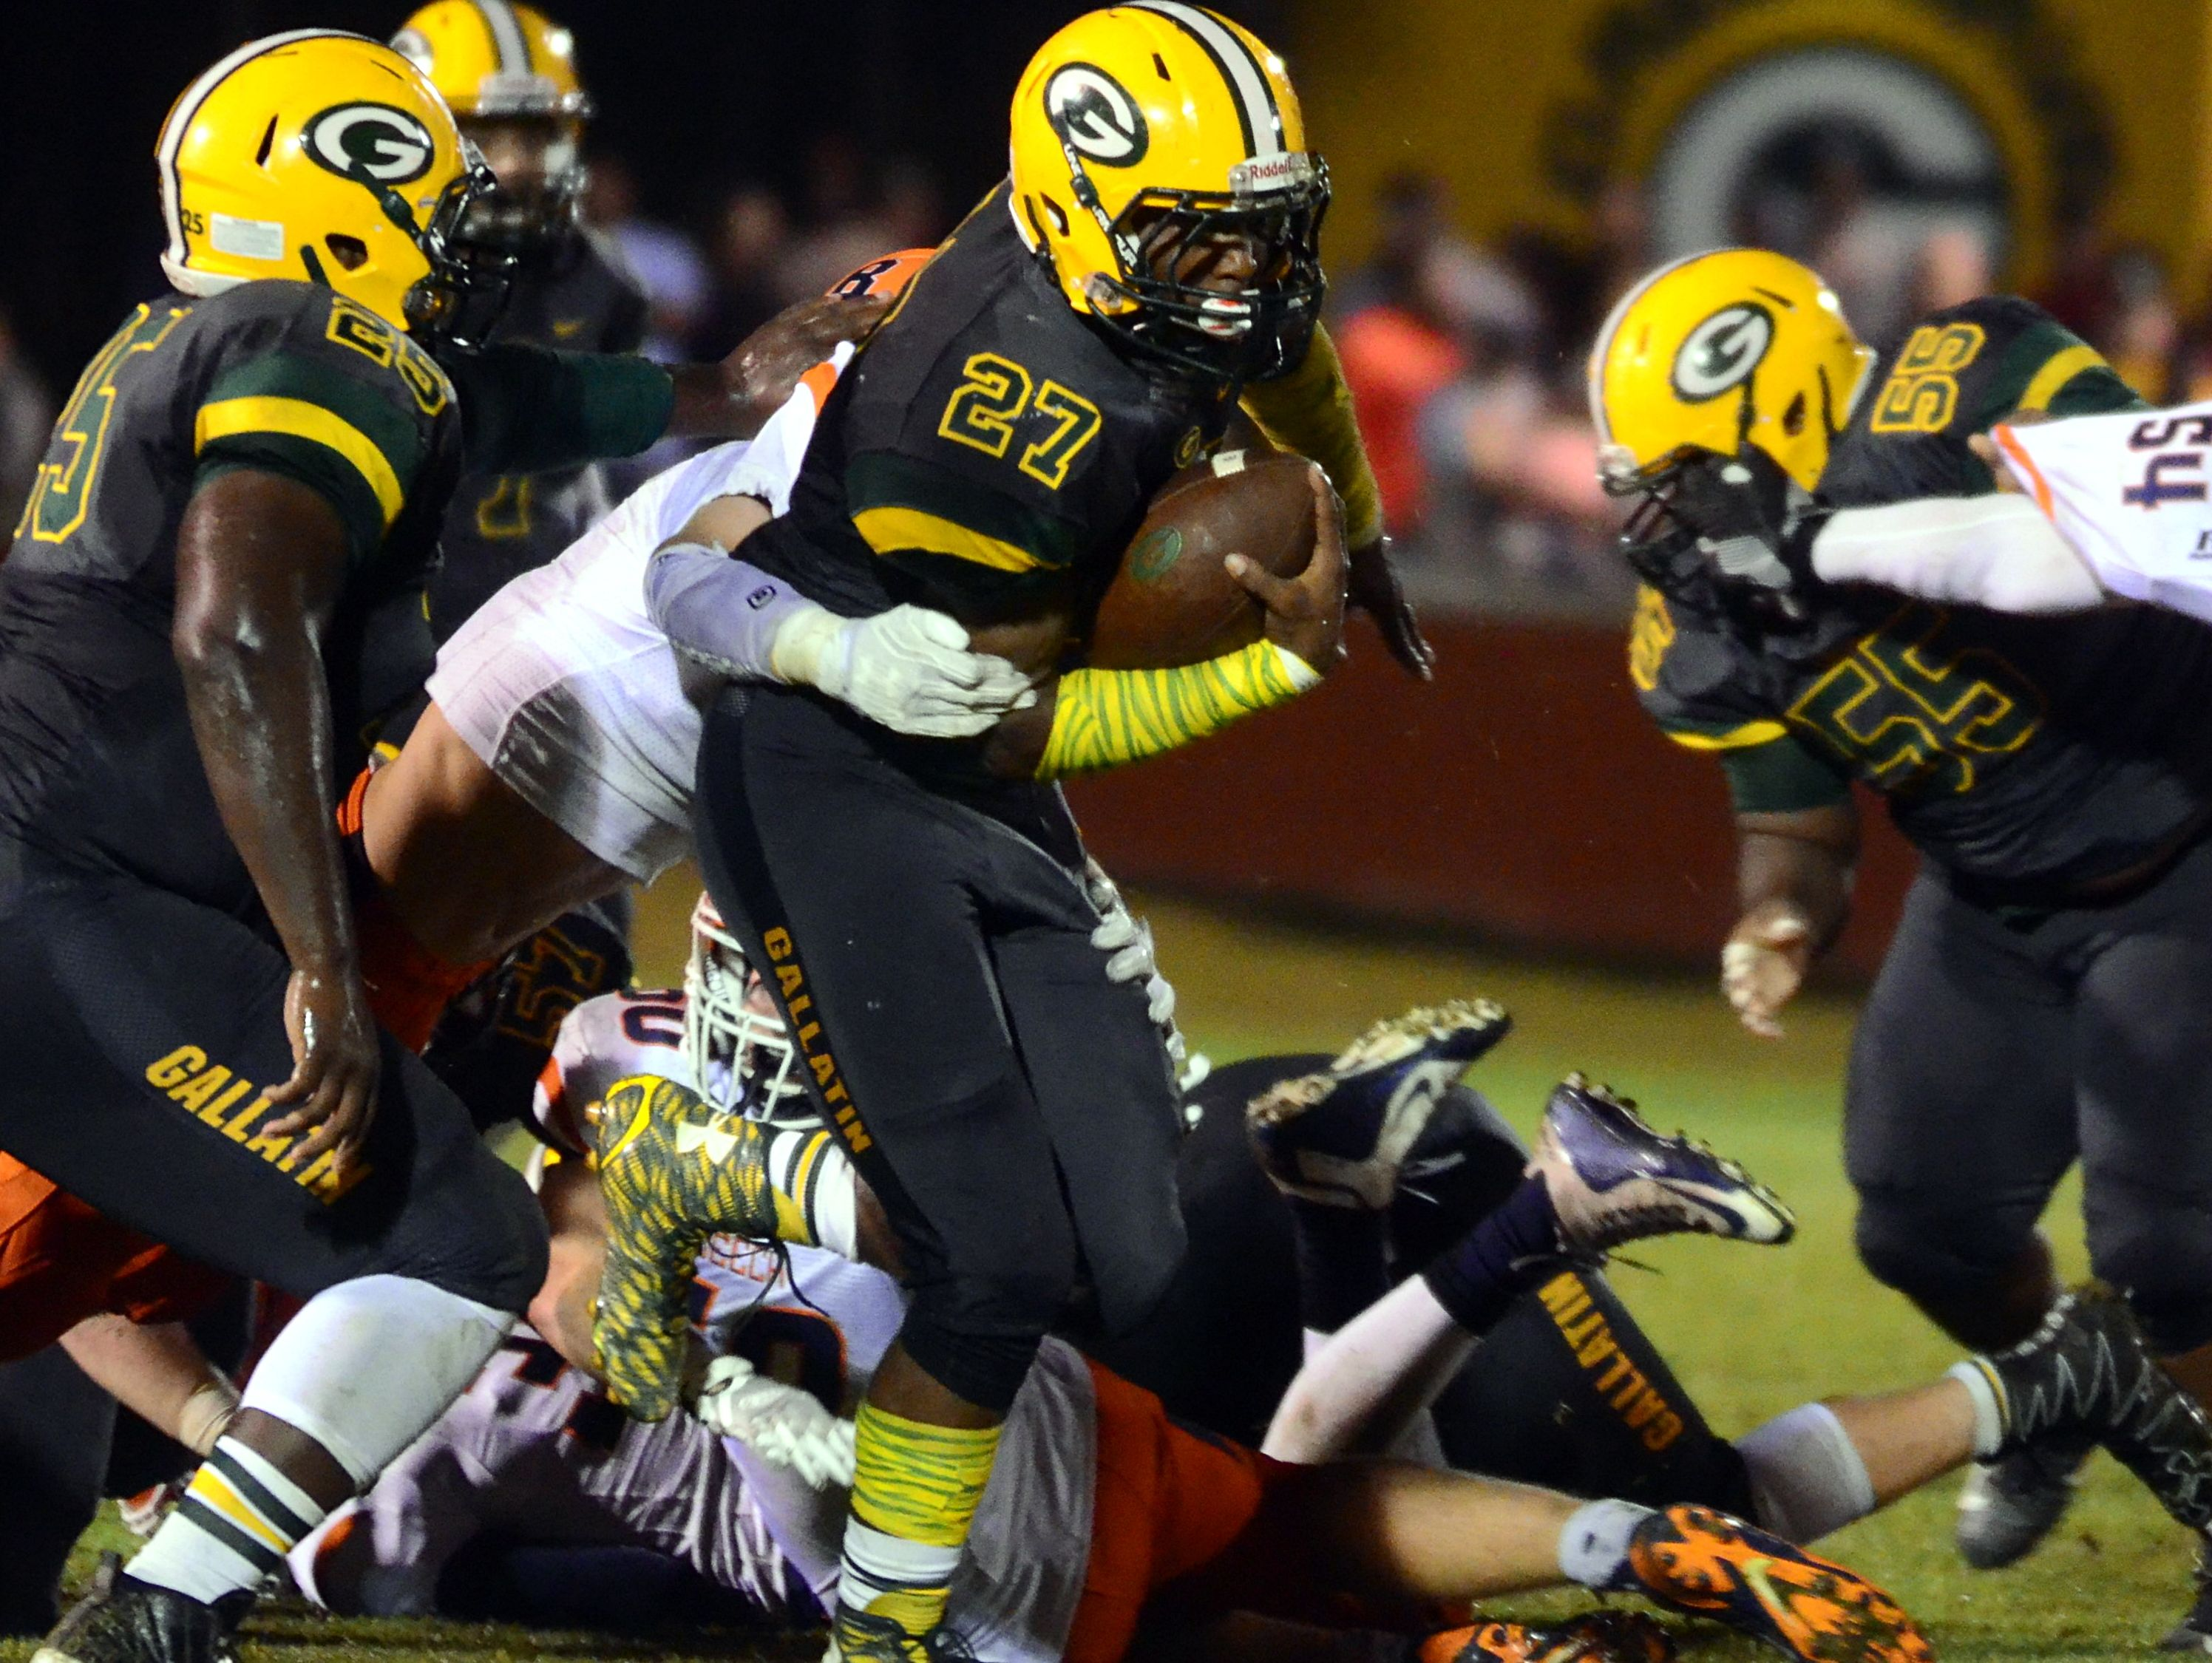 Gallatin High senior Jordan Mason has rushed for 2,030 yards and 23 touchdowns this season.